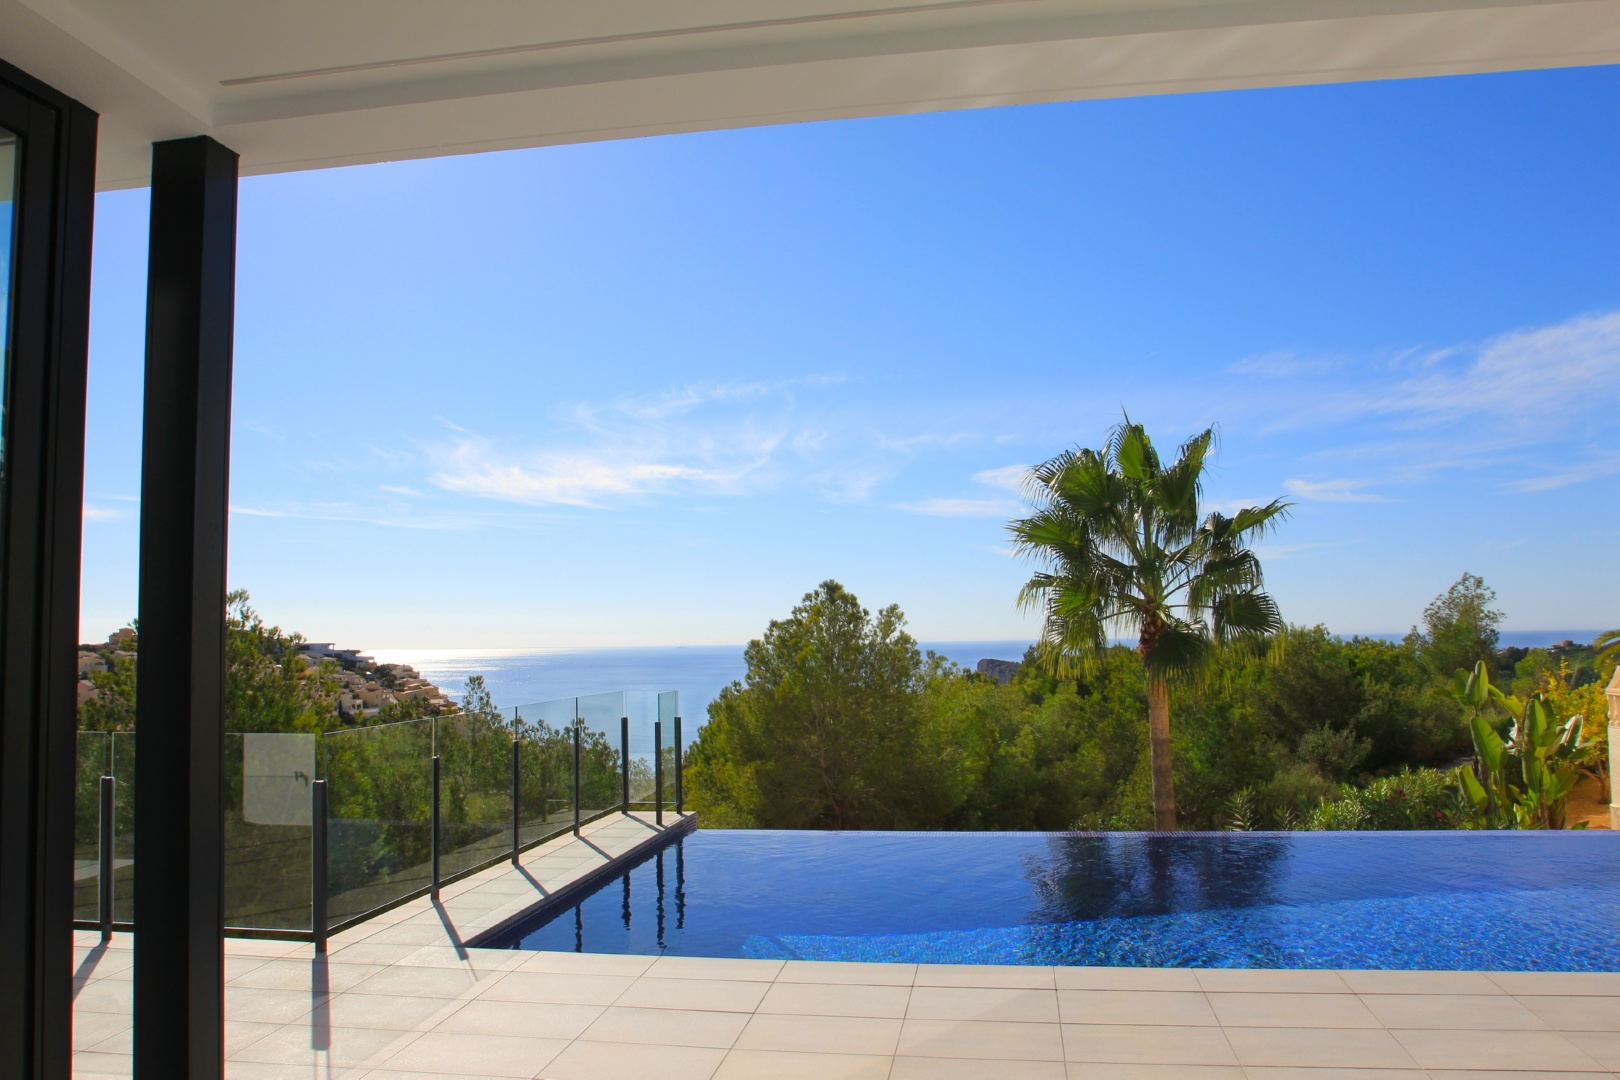 New build villas For Sale in Cumbre Del Sol, Alicante